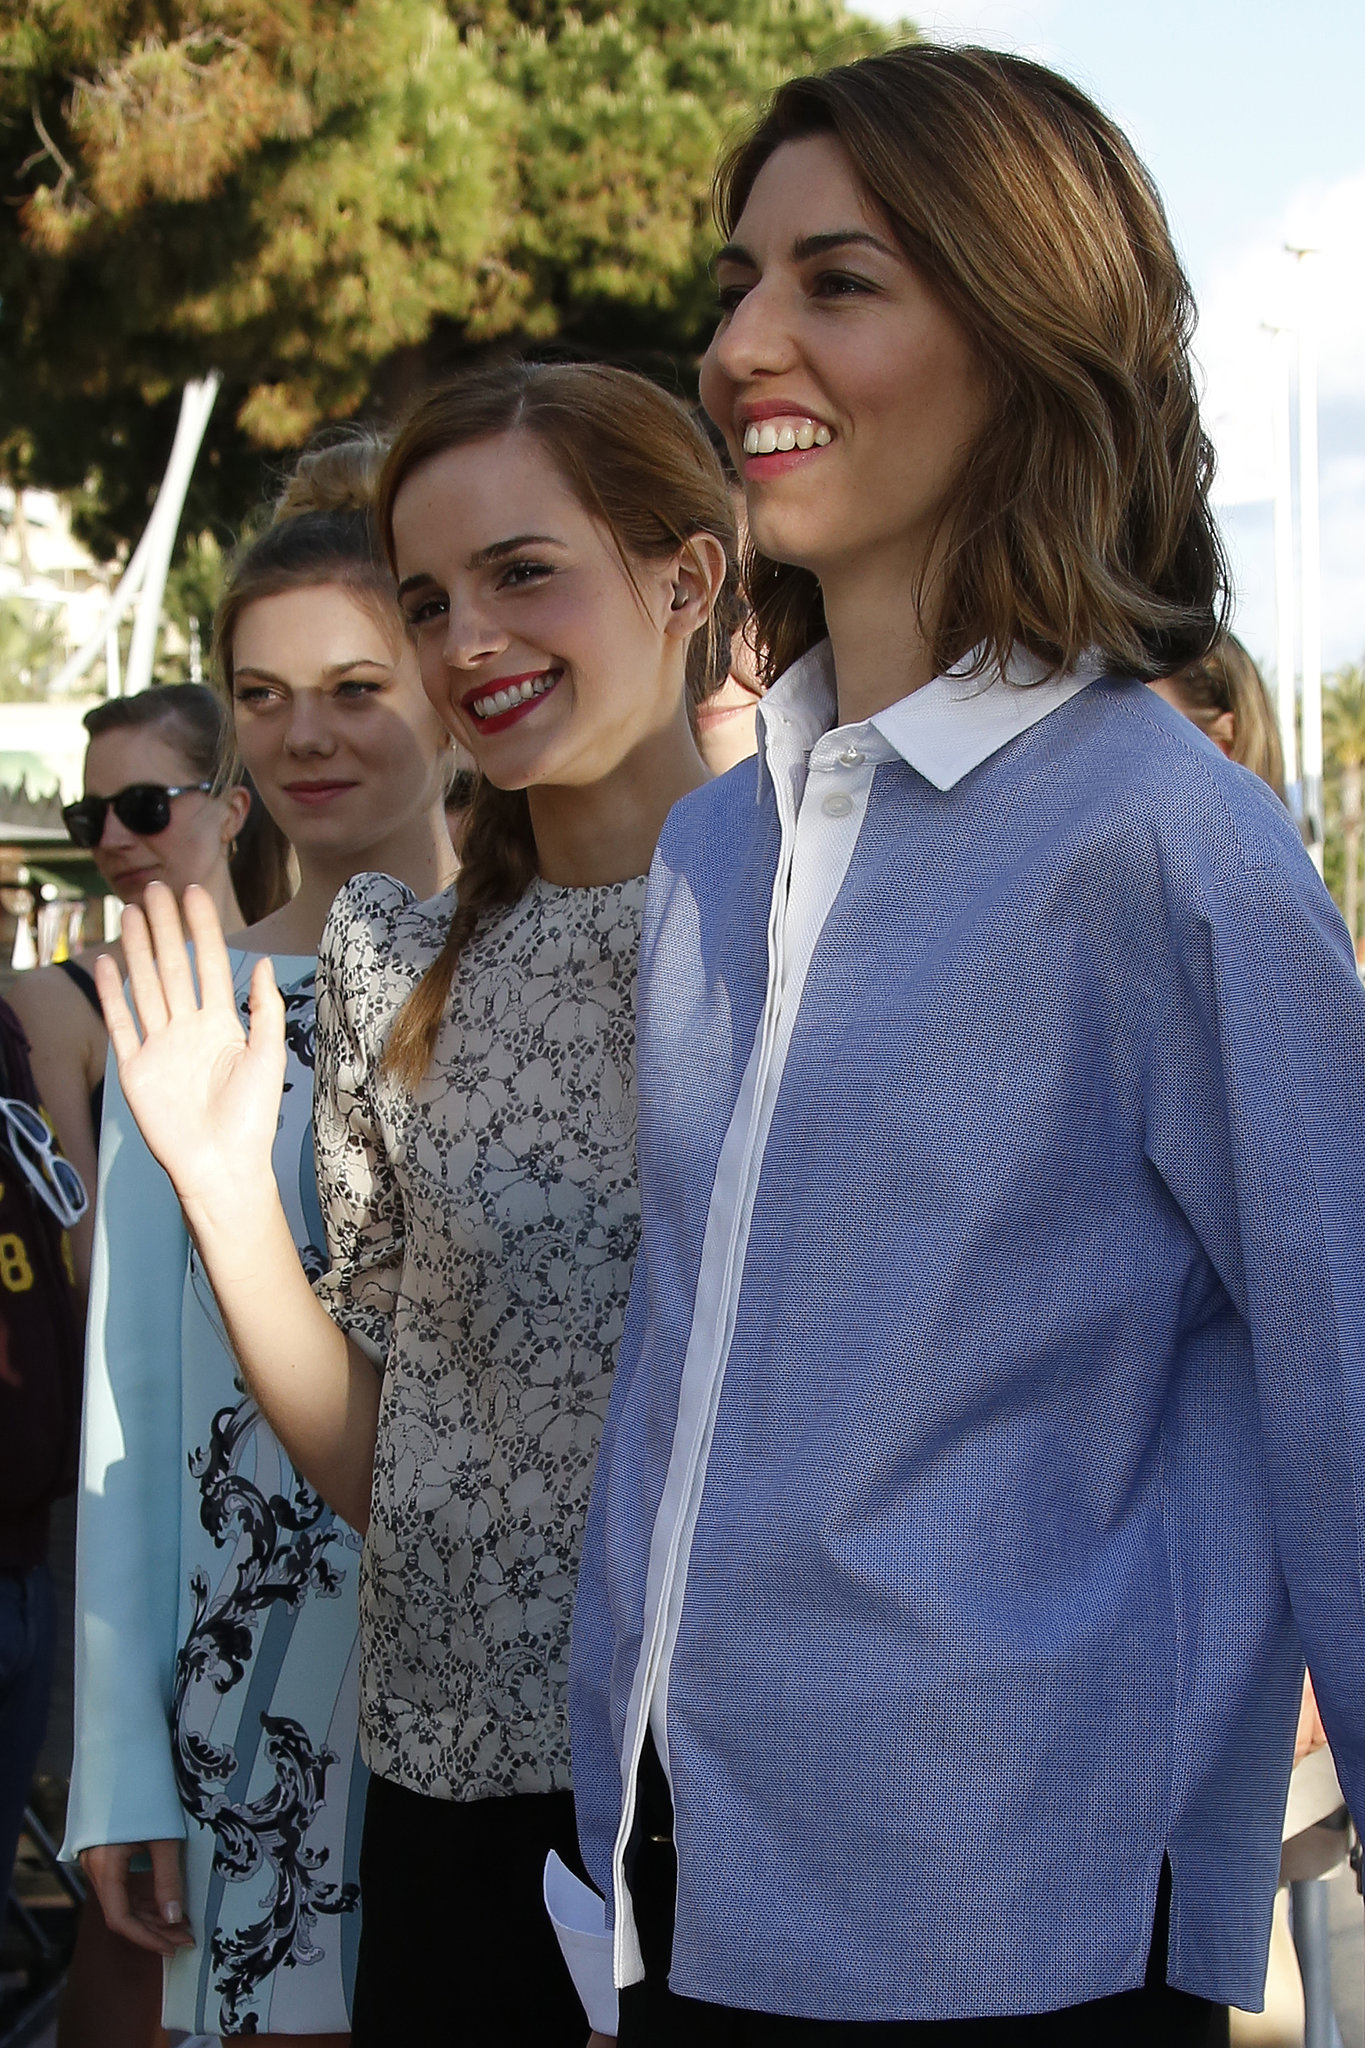 Emma Watson and Sofia Coppola promoted The Bling Ring at Cannes.